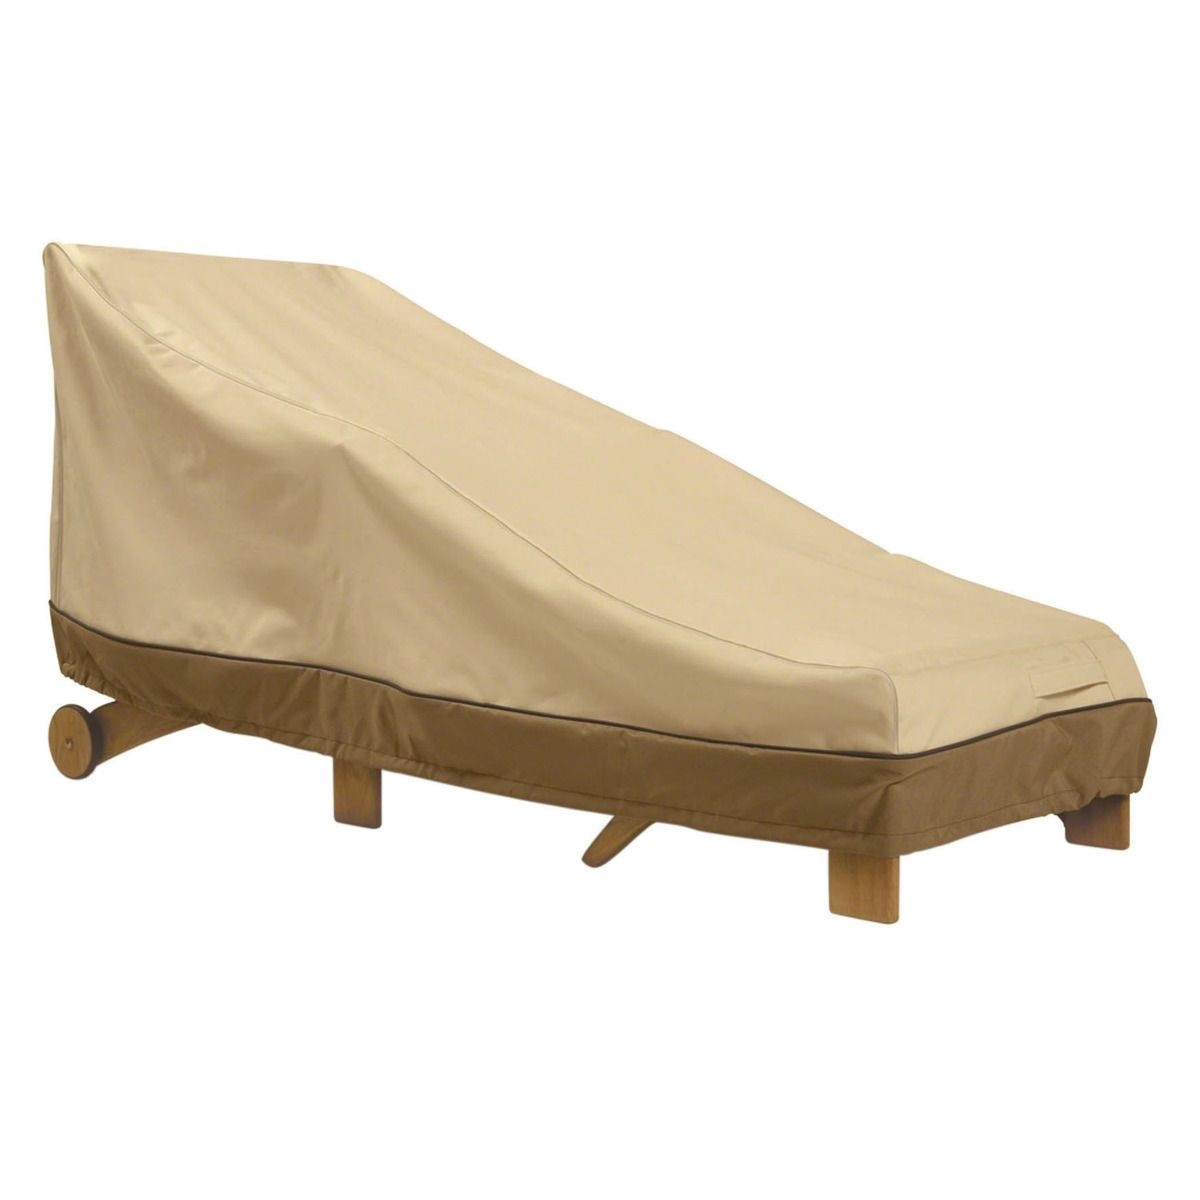 Single Adjustable Chaise Lounge with Arms Outdoor Cover